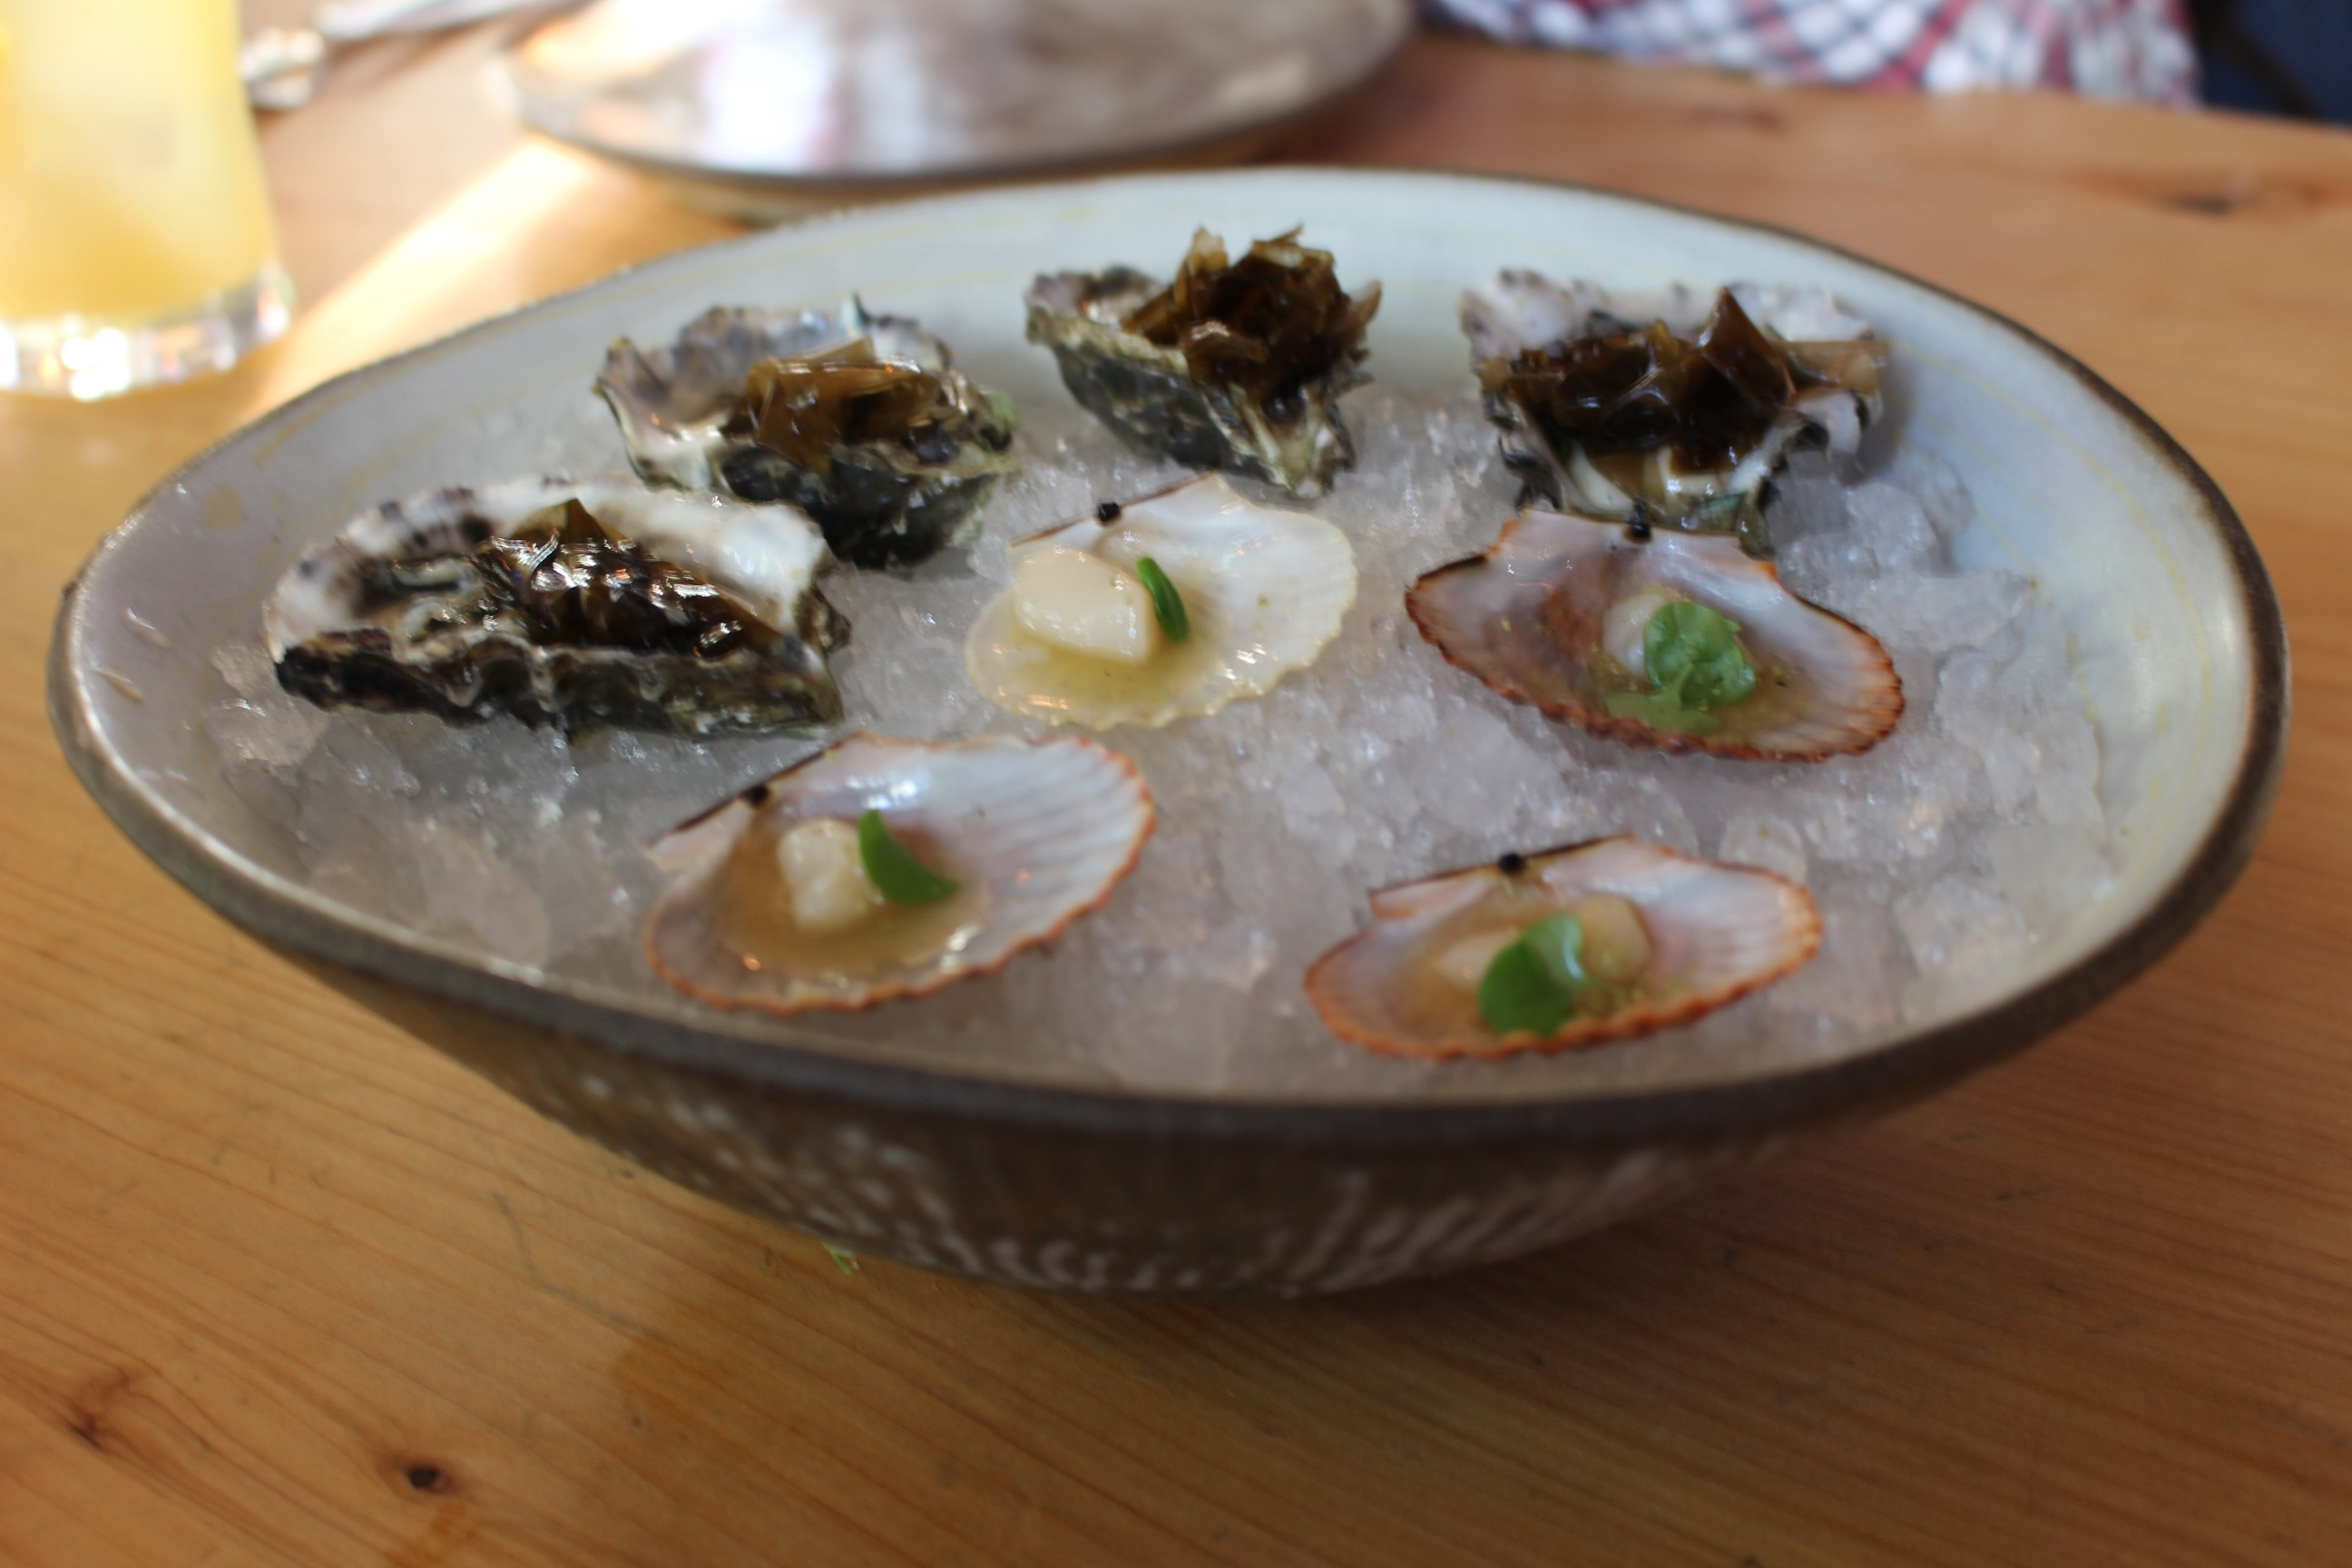 Hog Island Oysters (top) and Taylor Bay scallops (bottom).